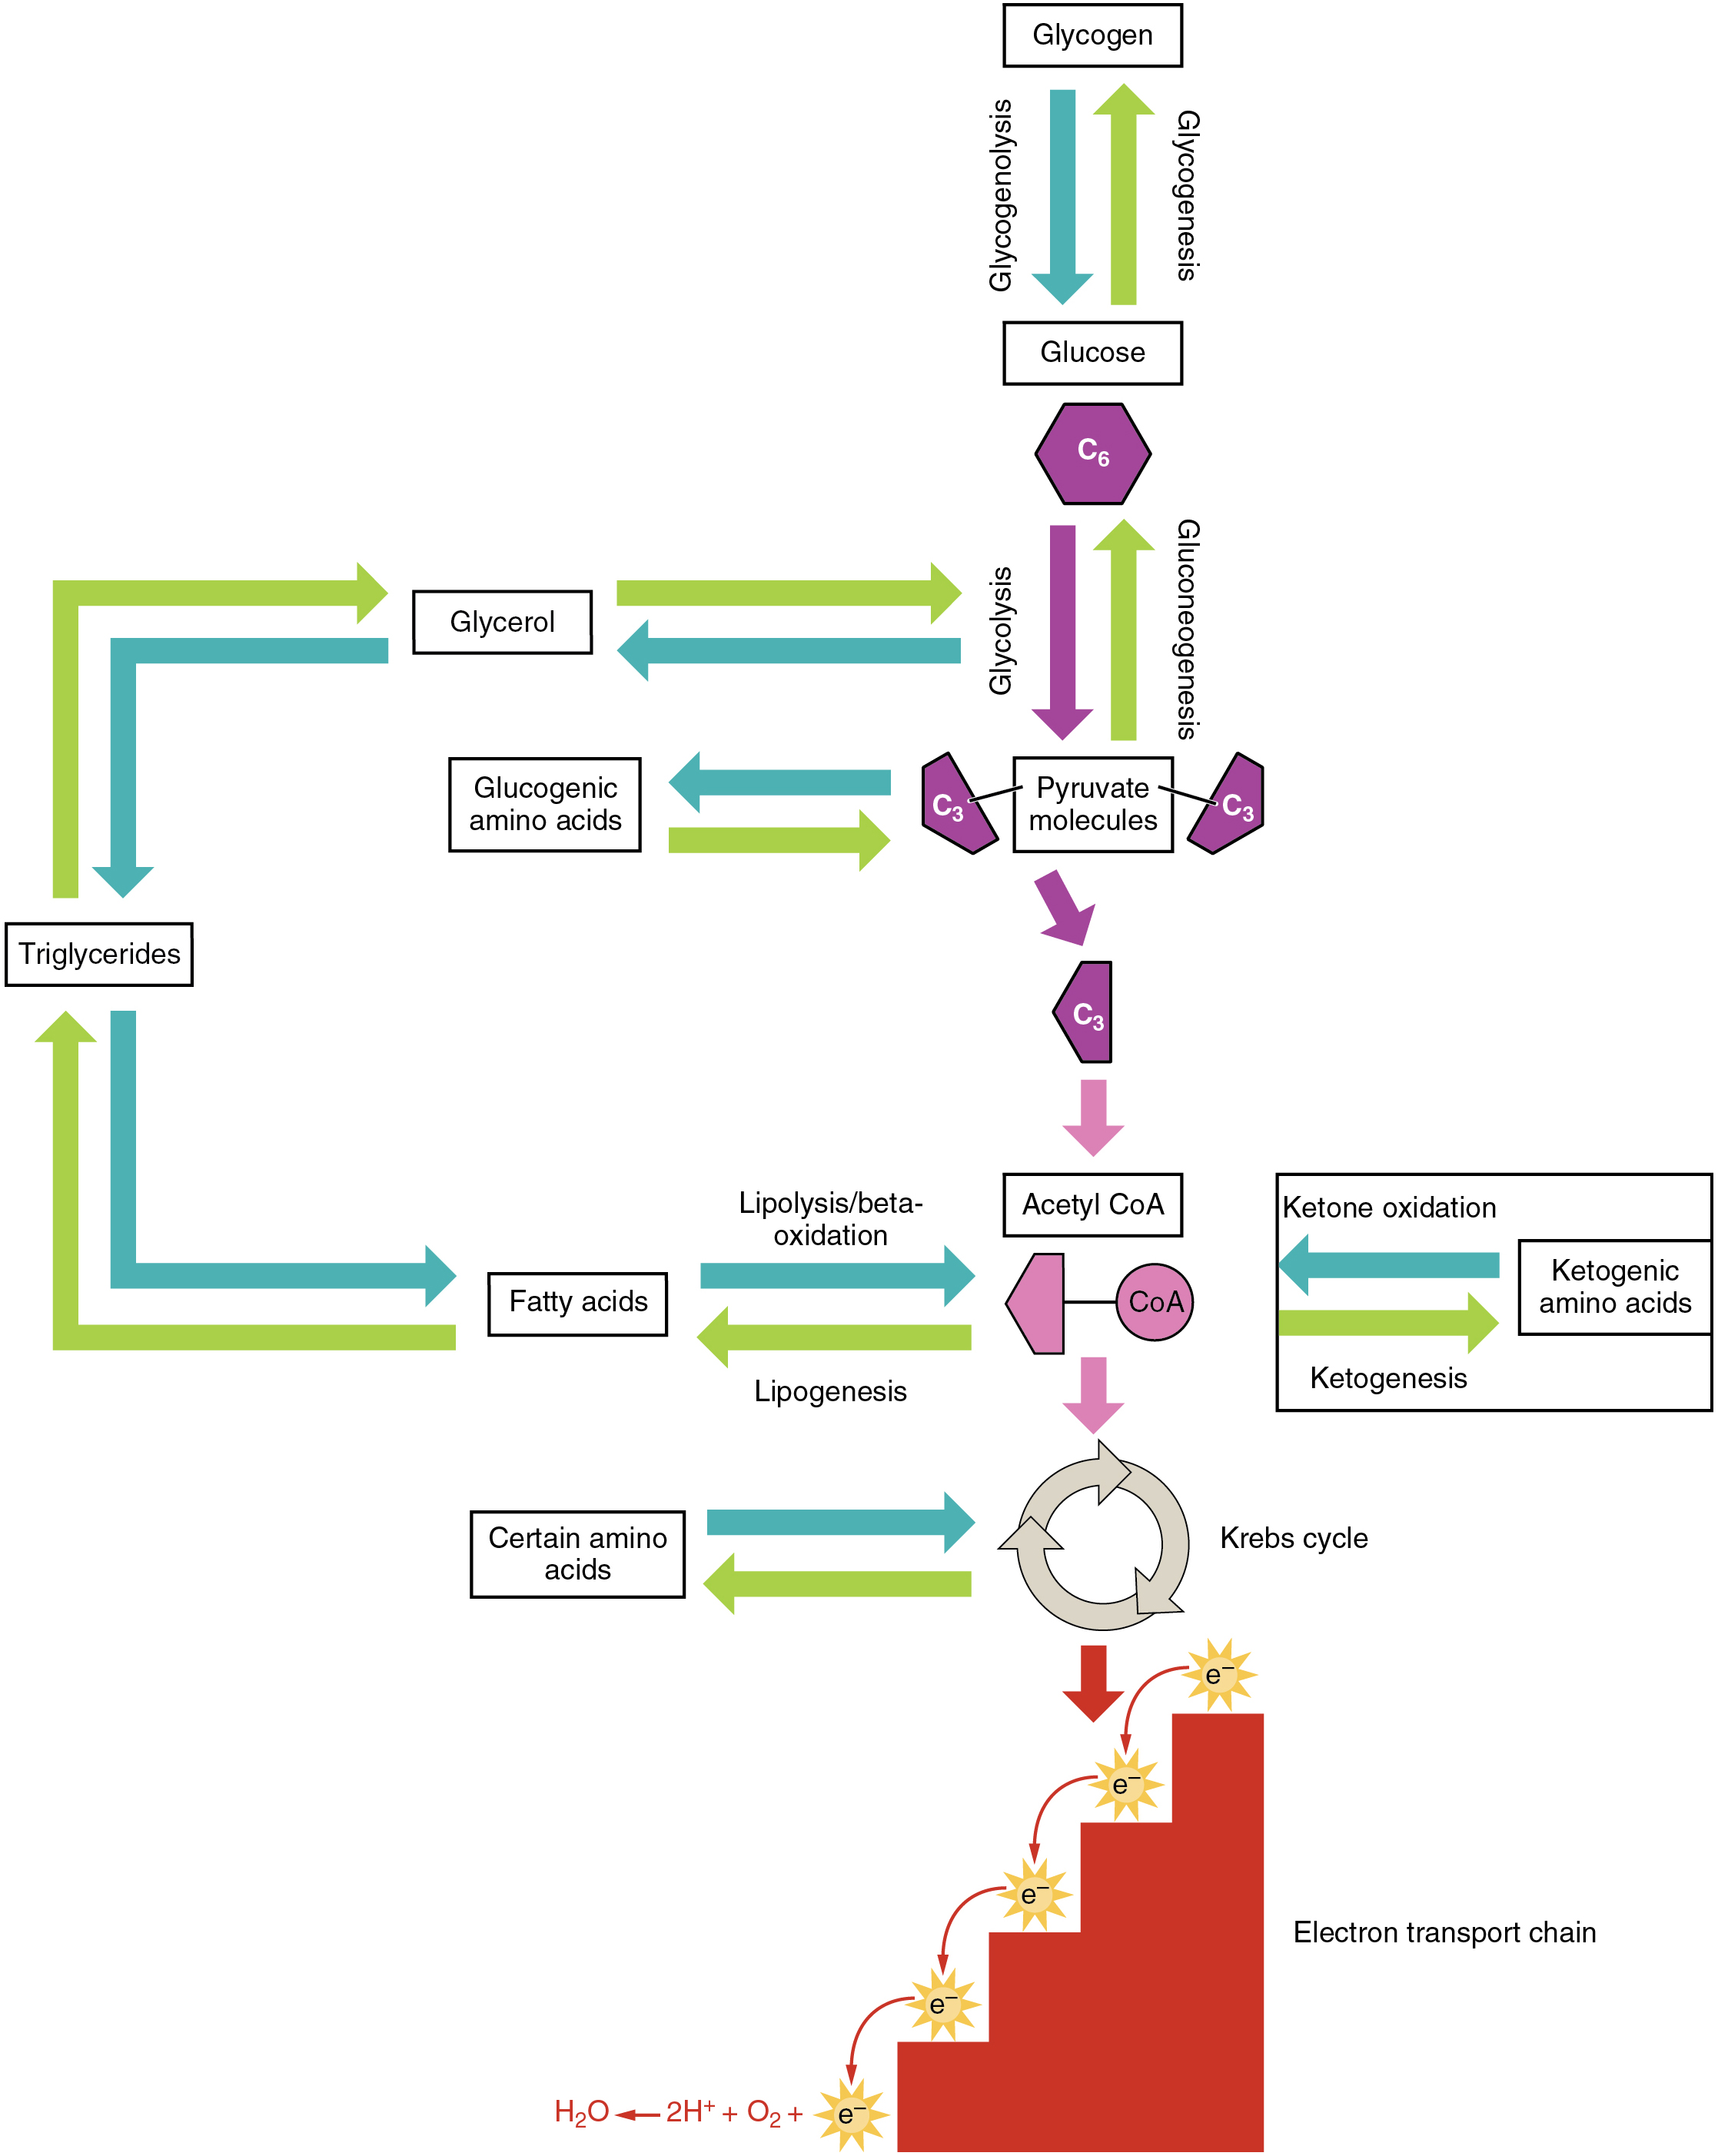 This diagram shows the different metabolic pathways, and how they are connected.